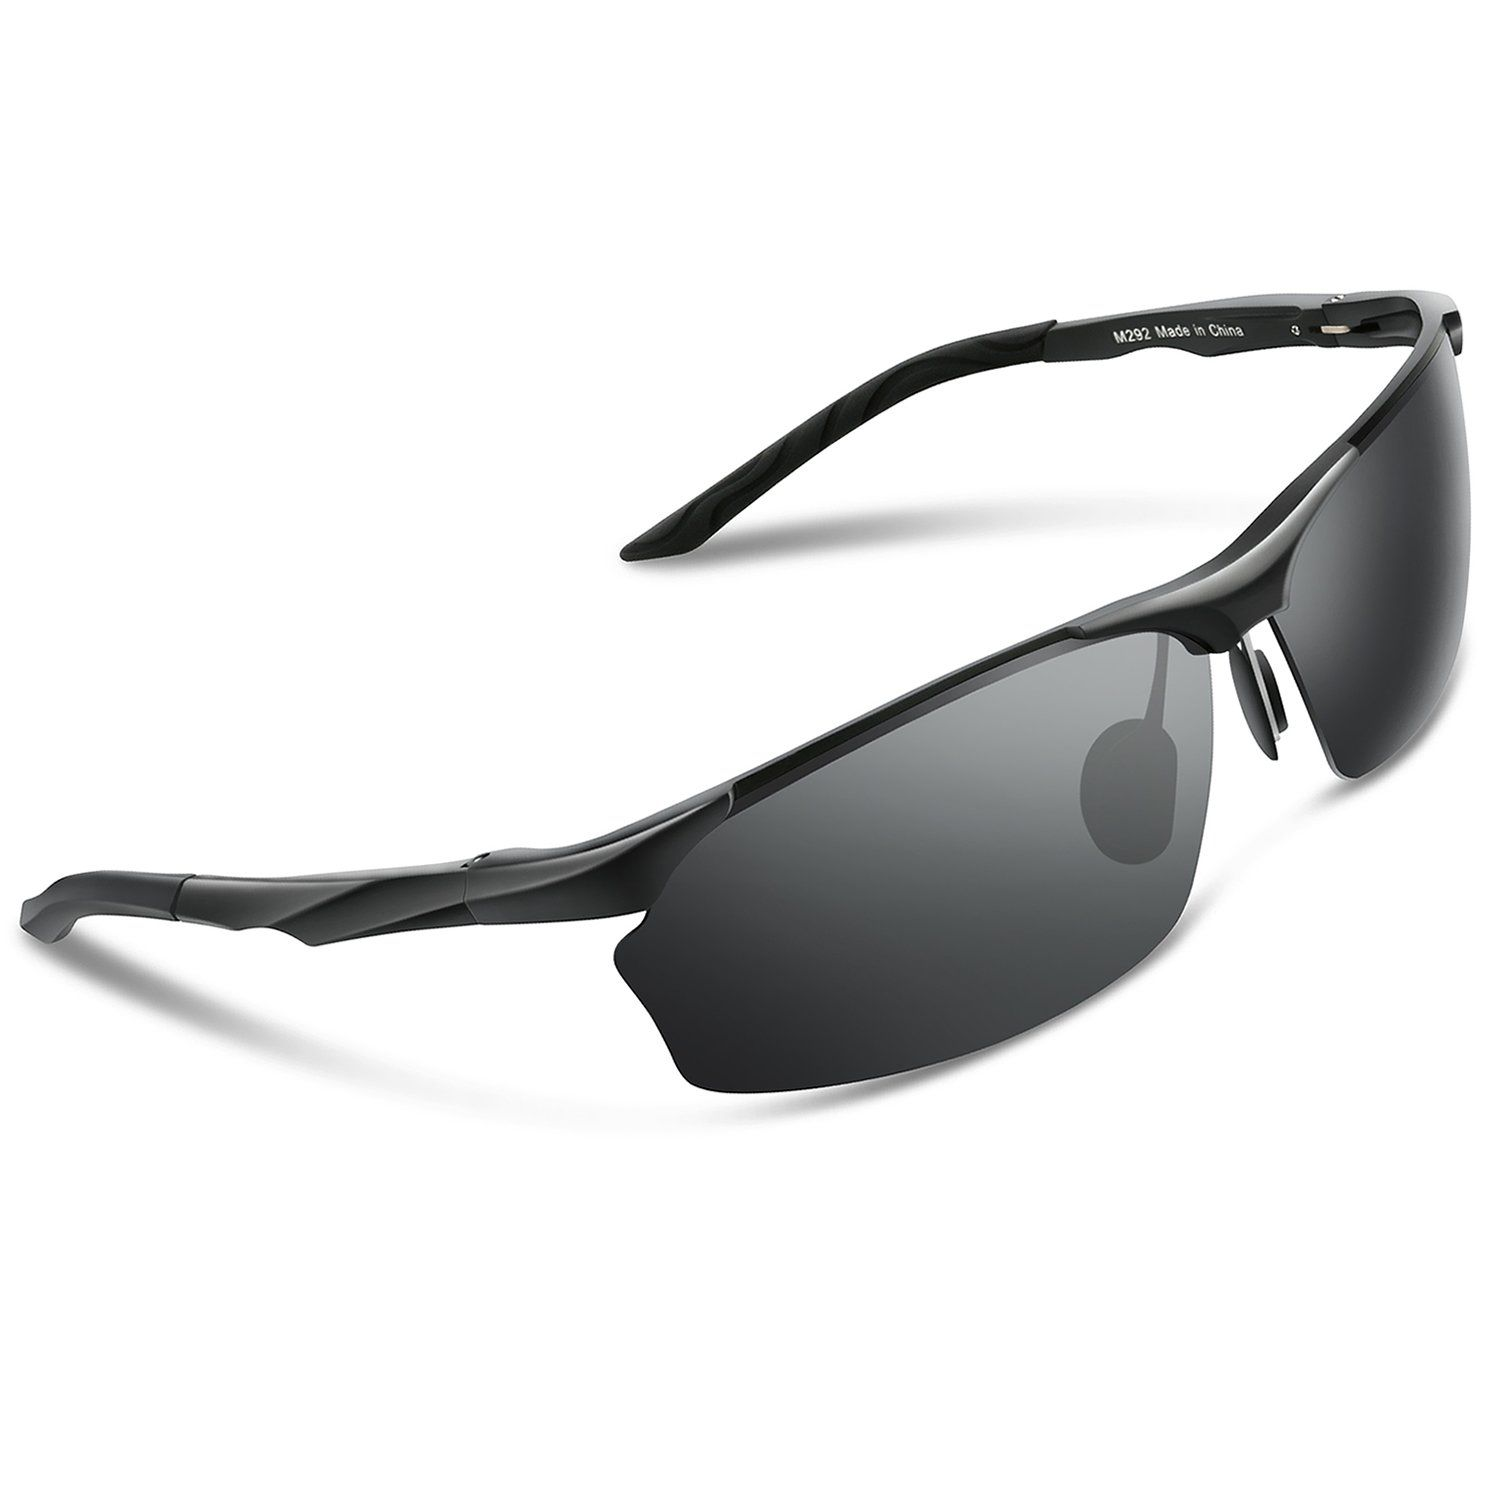 80f08d83fa Torege Men s Sports Style Polarized Sunglasses For Cycling Running Fishing  Driving Golf Unbreakable Al-Mg Metal Frame Glasses M292 (Black Grey lens).